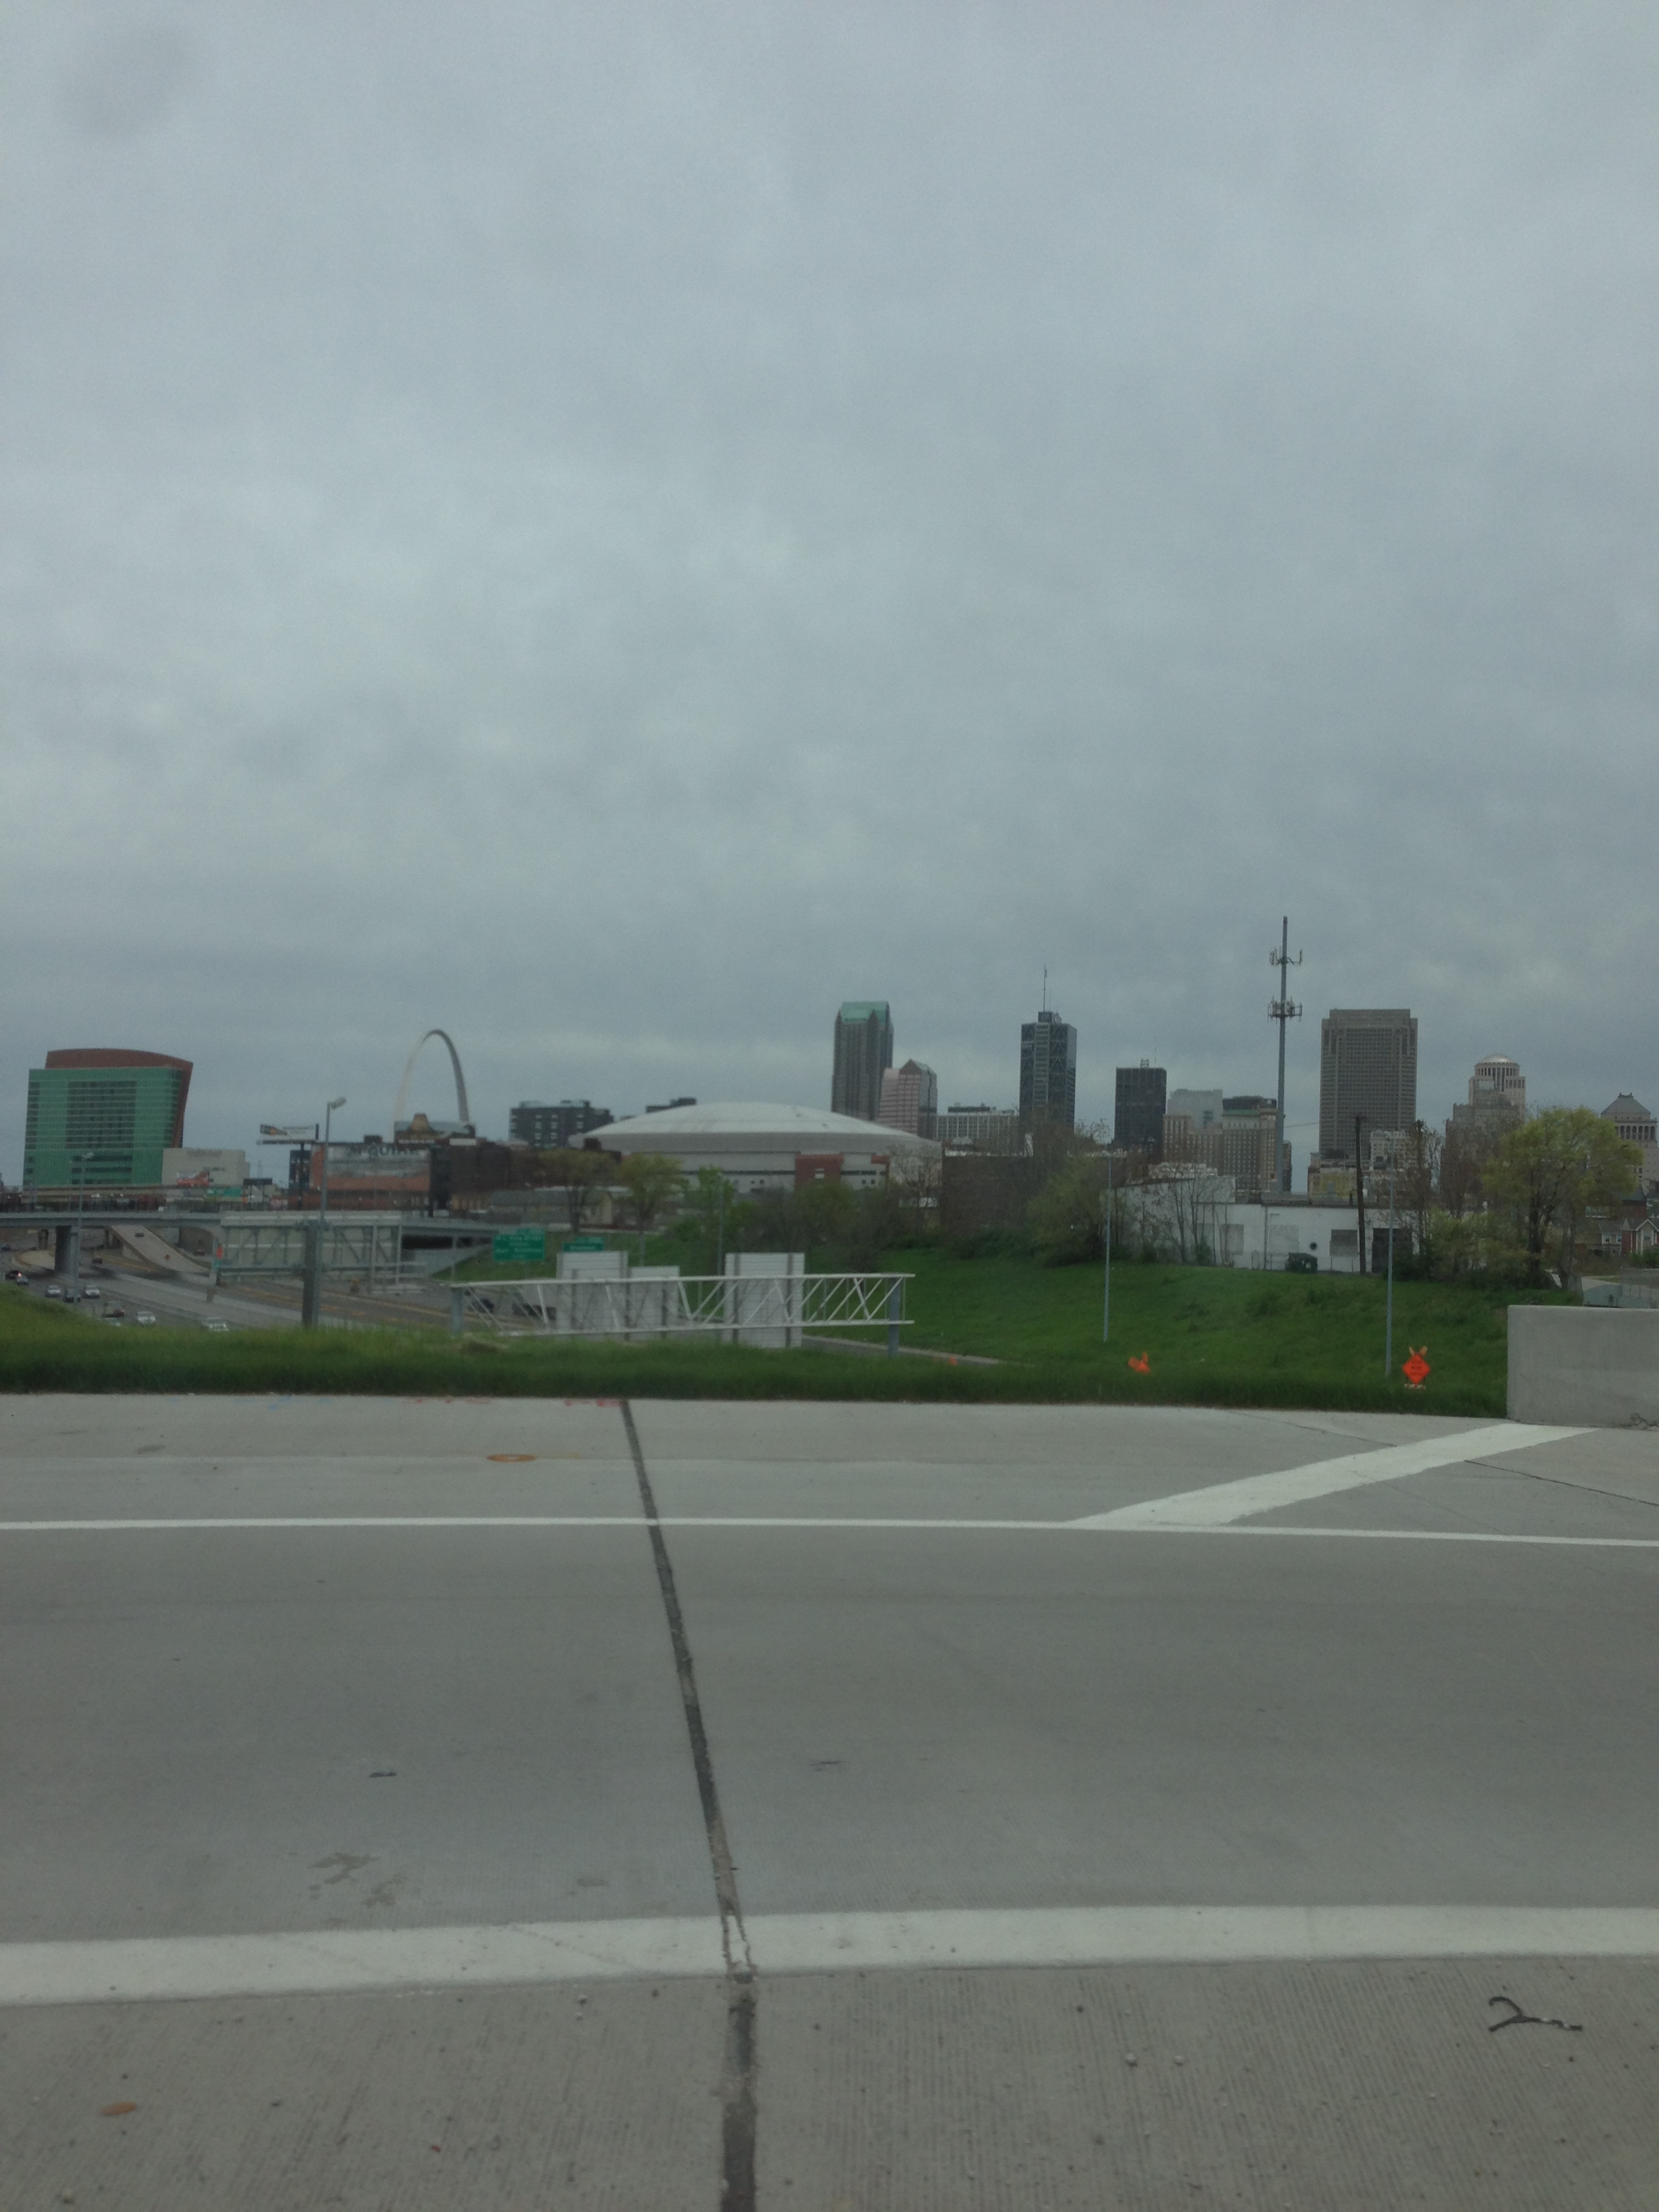 I took this photo of St. Louis from our U-Haul.